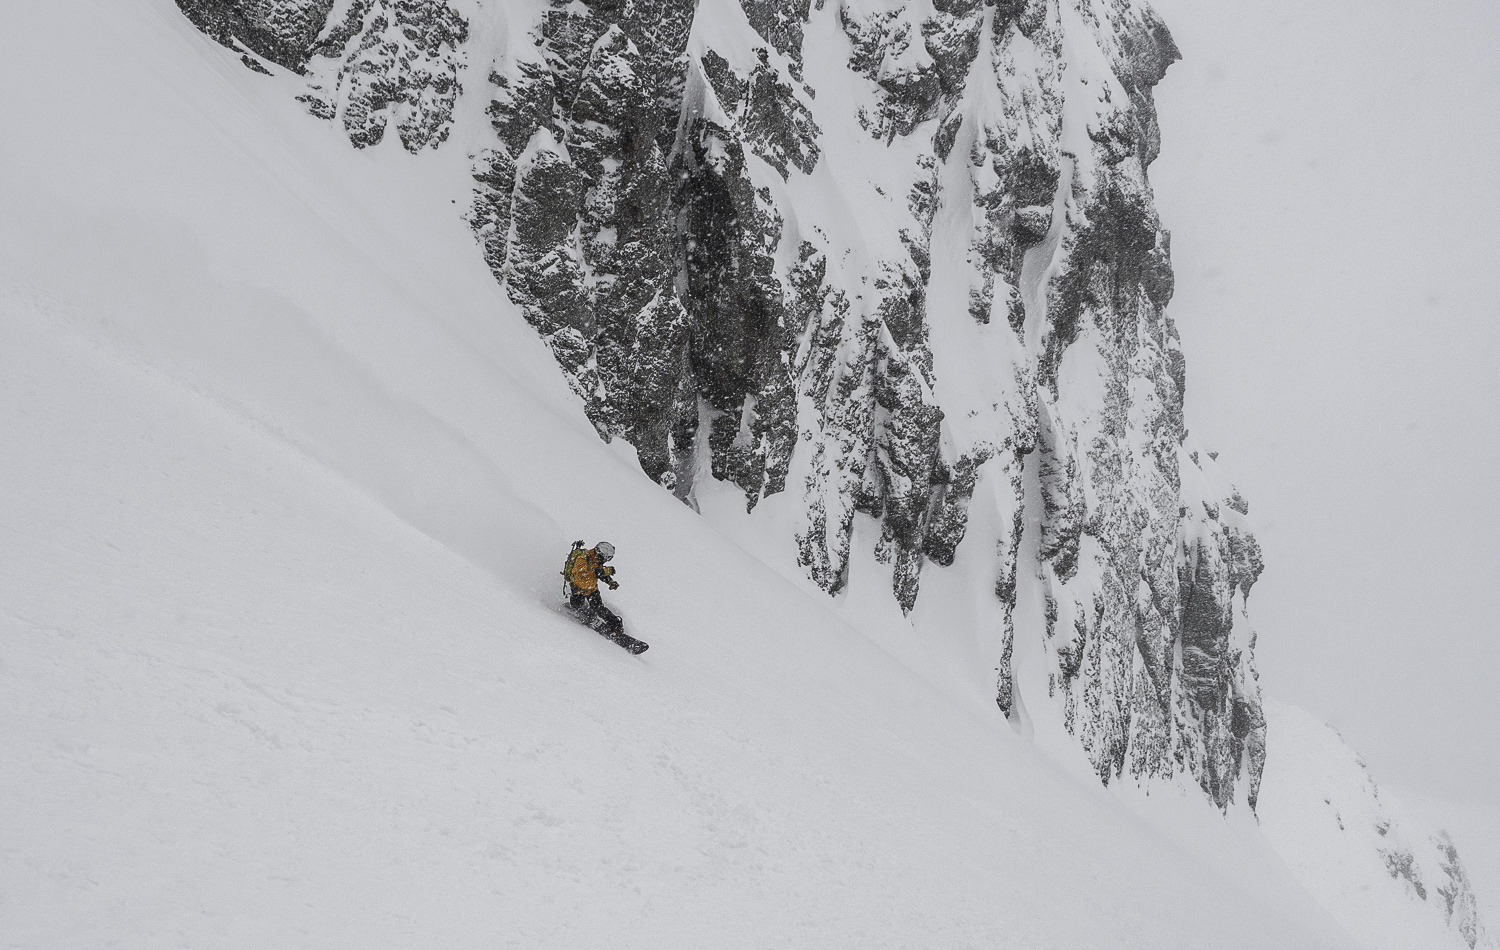 About a foot of fresh collected in the chute during our climb - Todd